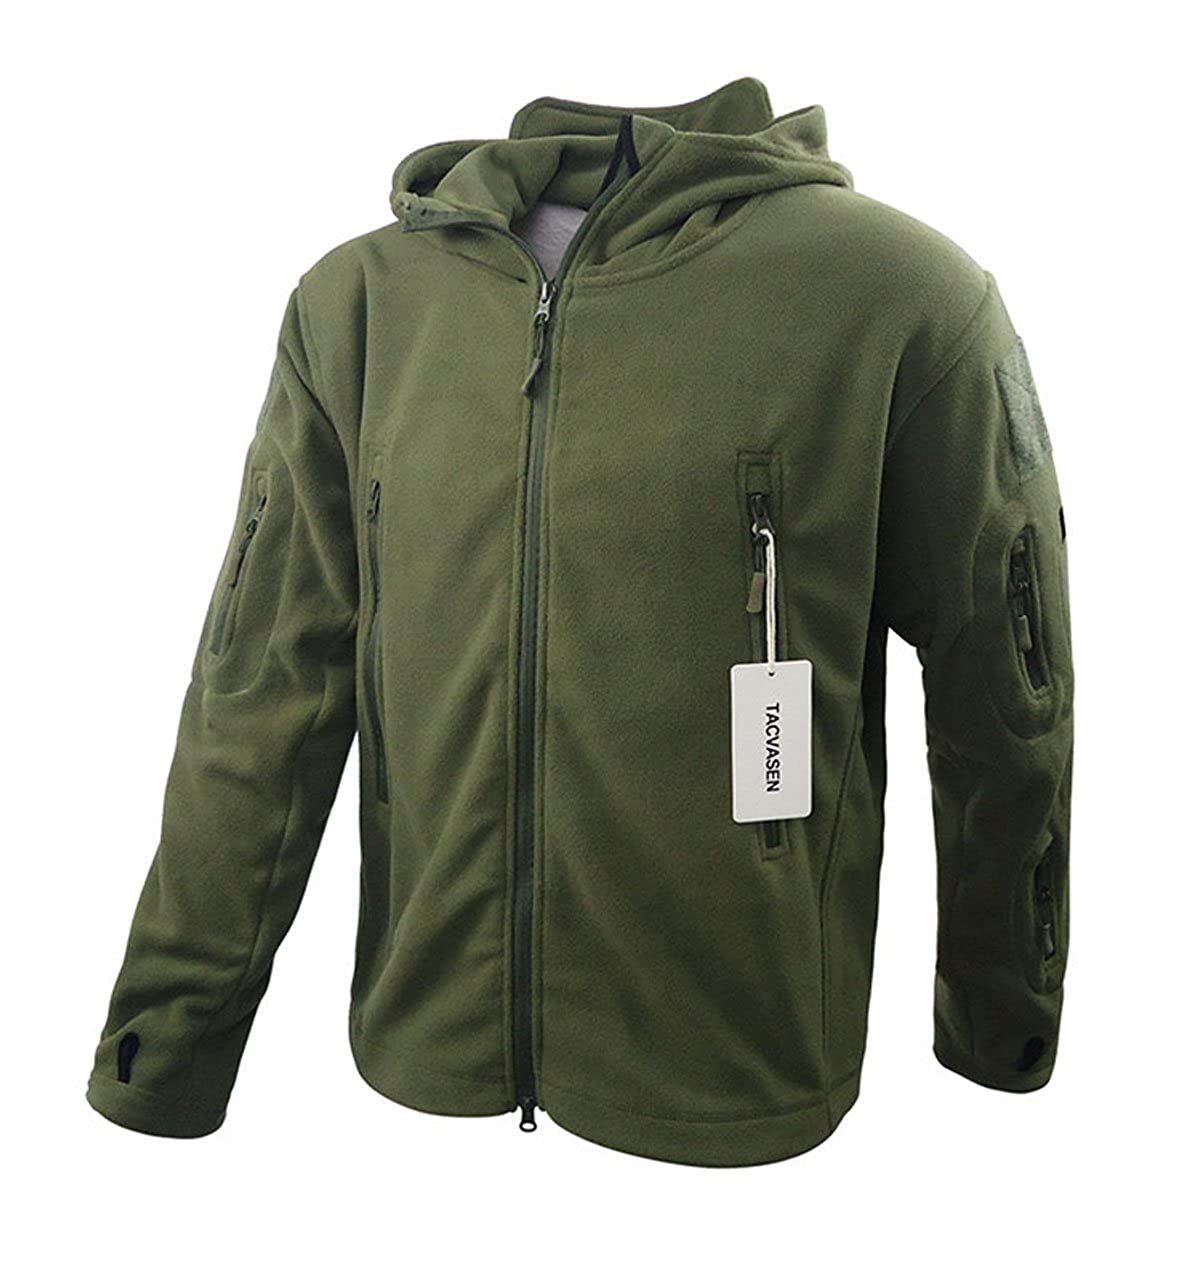 63888f2a1 TACVASEN® Men's Tactical Fleece Jacket: Amazon.ca: Clothing & Accessories